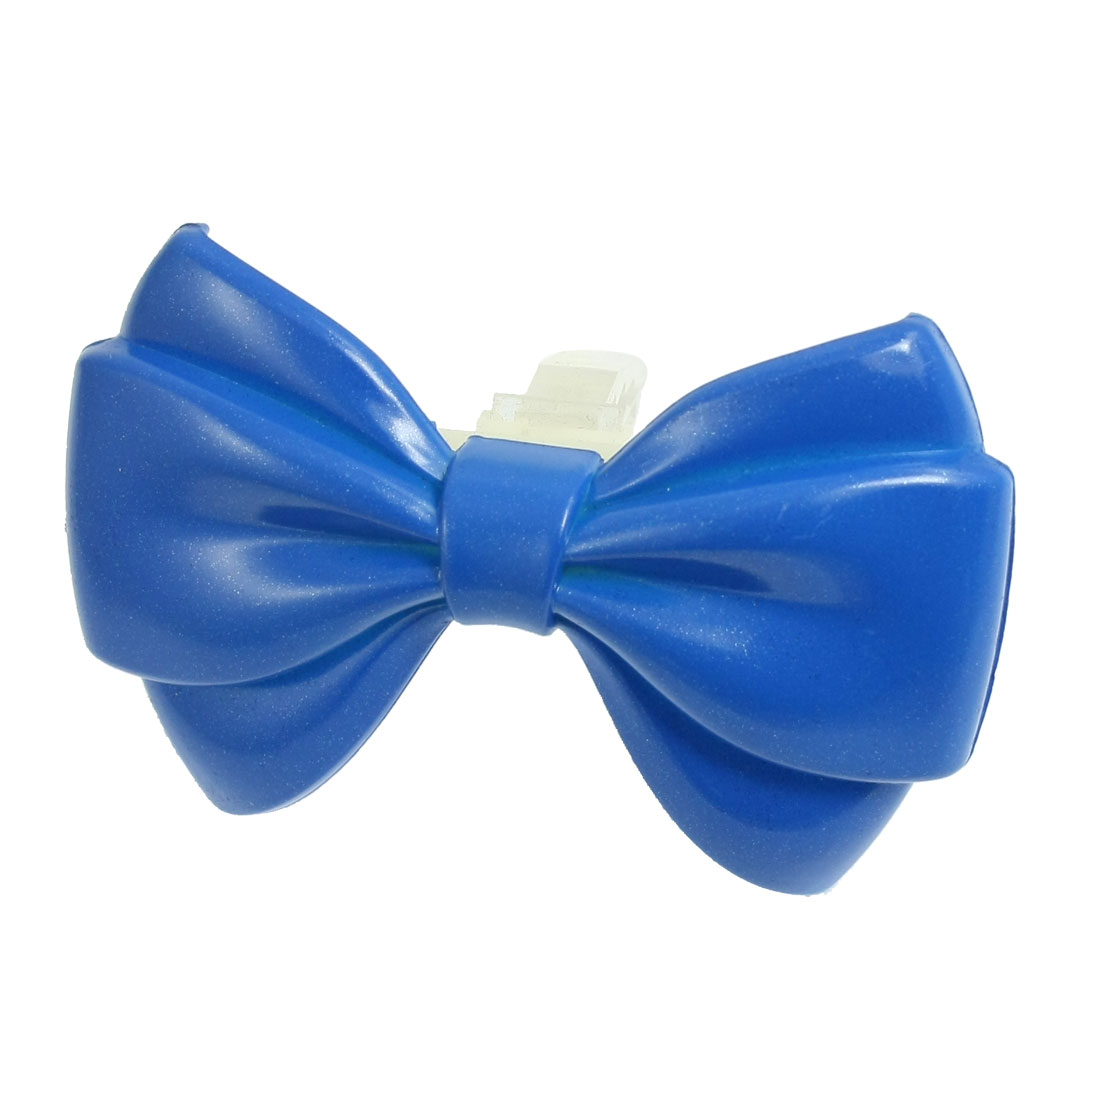 Blue Bowtie Shape Auto Car Air Vent Perfumed Freshener